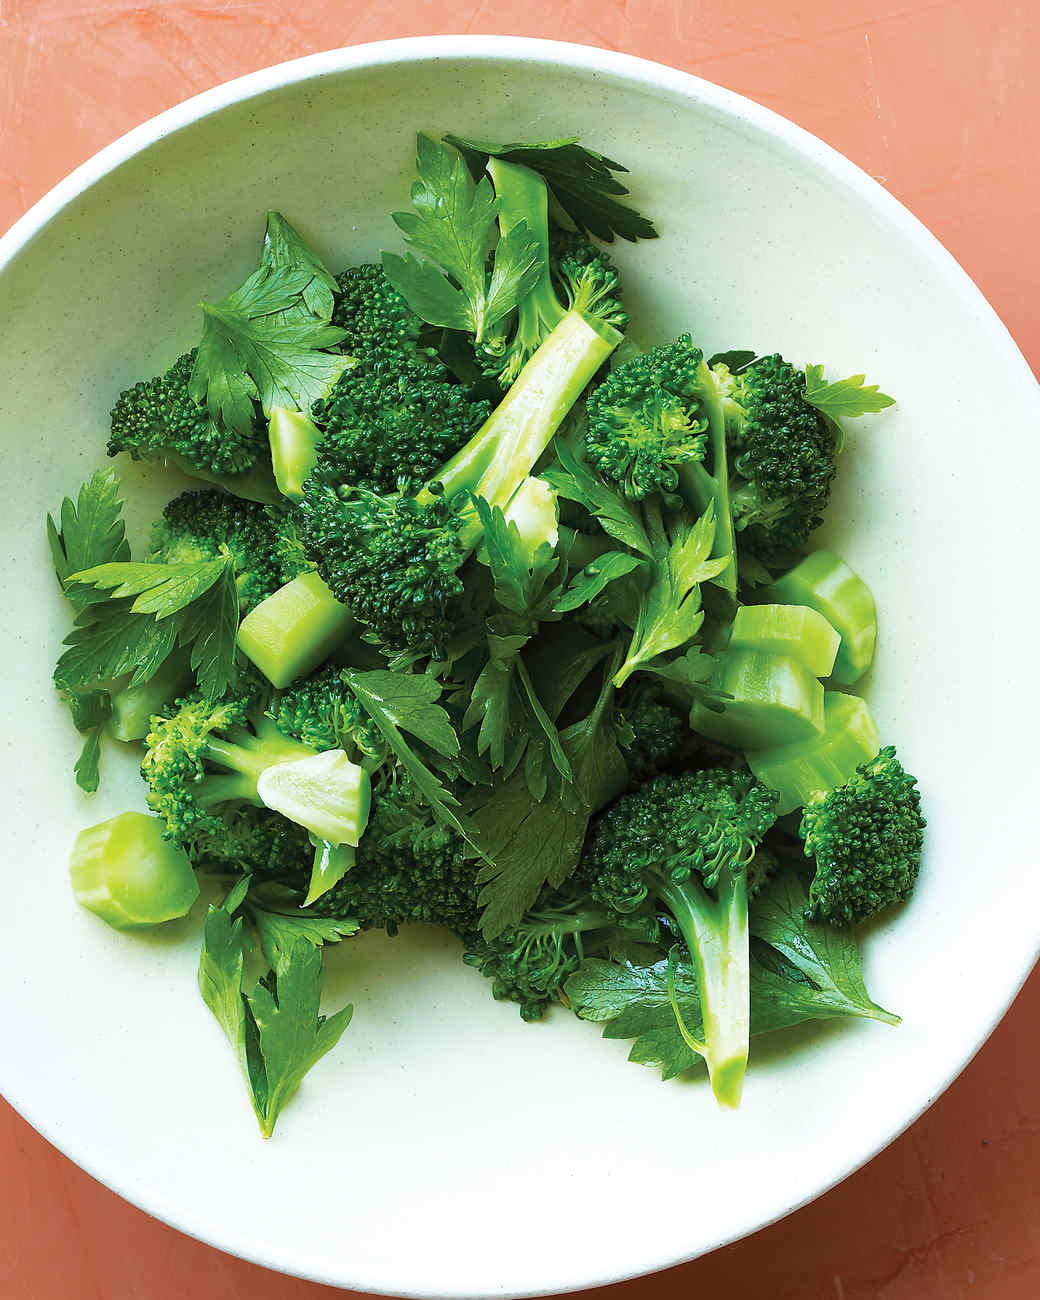 Buttery Broccoli with Parsley